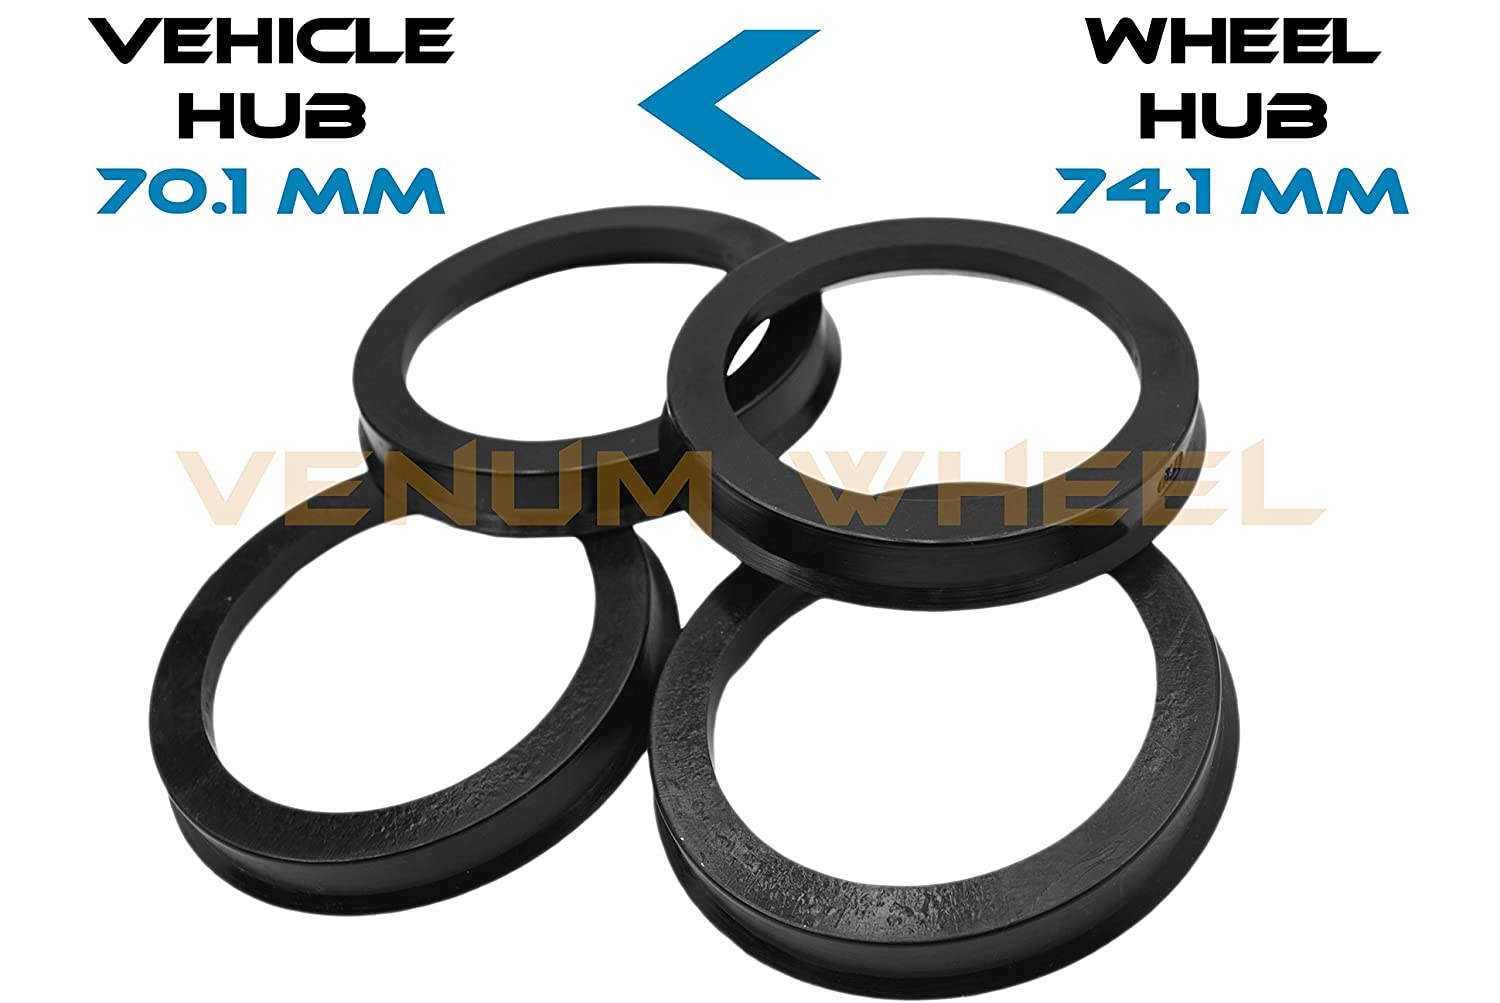 4 Hub Centric Rings 70.1 ID To 74.1 OD Black Polycarbonate Material ( Vehicle 70.1mm to Wheel 74.1mm) VENUM WHEEL ACCESSORIES